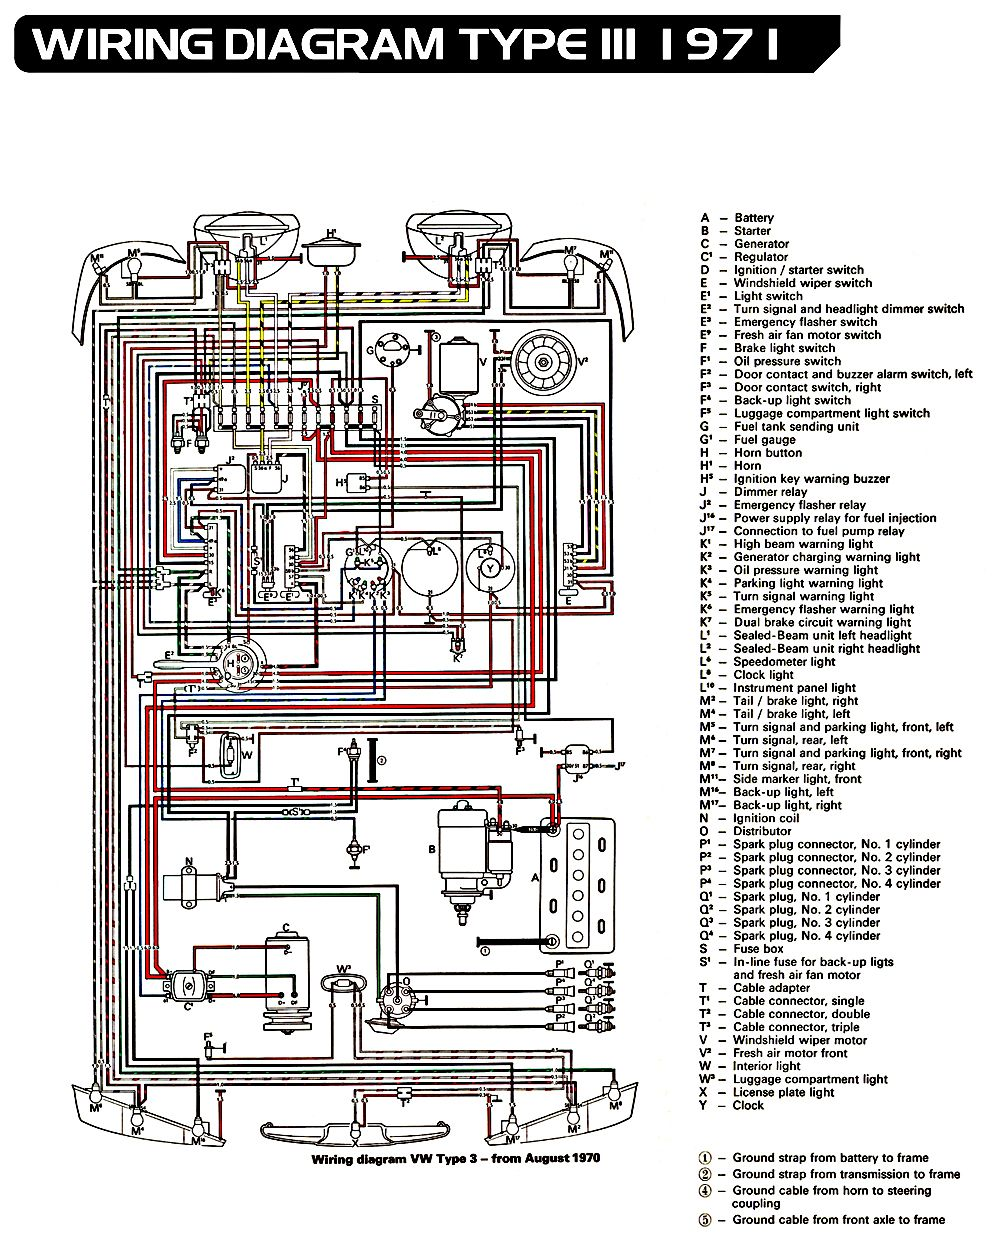 e19fd202920e69647b5c593f54755423 1971 type 3 vw wiring diagram so simple compared to a modern ecu vw mk1 wiring diagram at creativeand.co